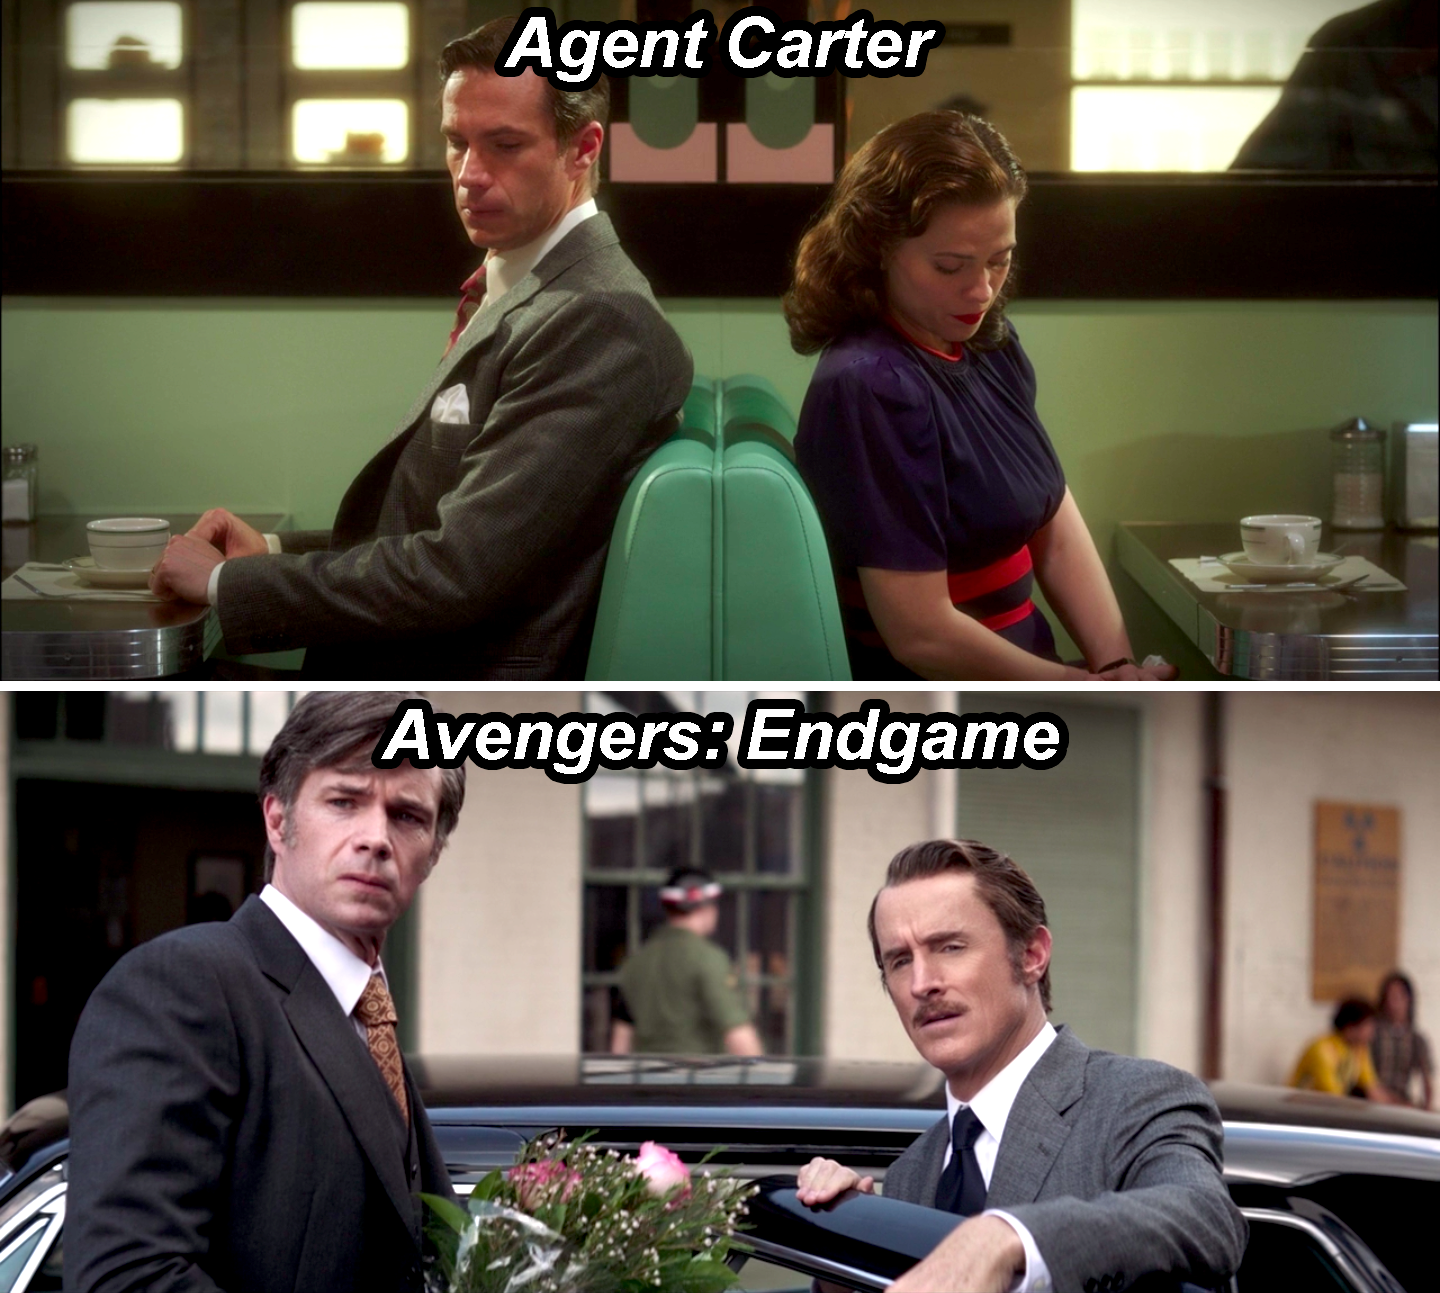 Jarvis and Peggy Carter in a diner in Agent Carter, and Jarvis opening a car door for Howard Stark in Endgame